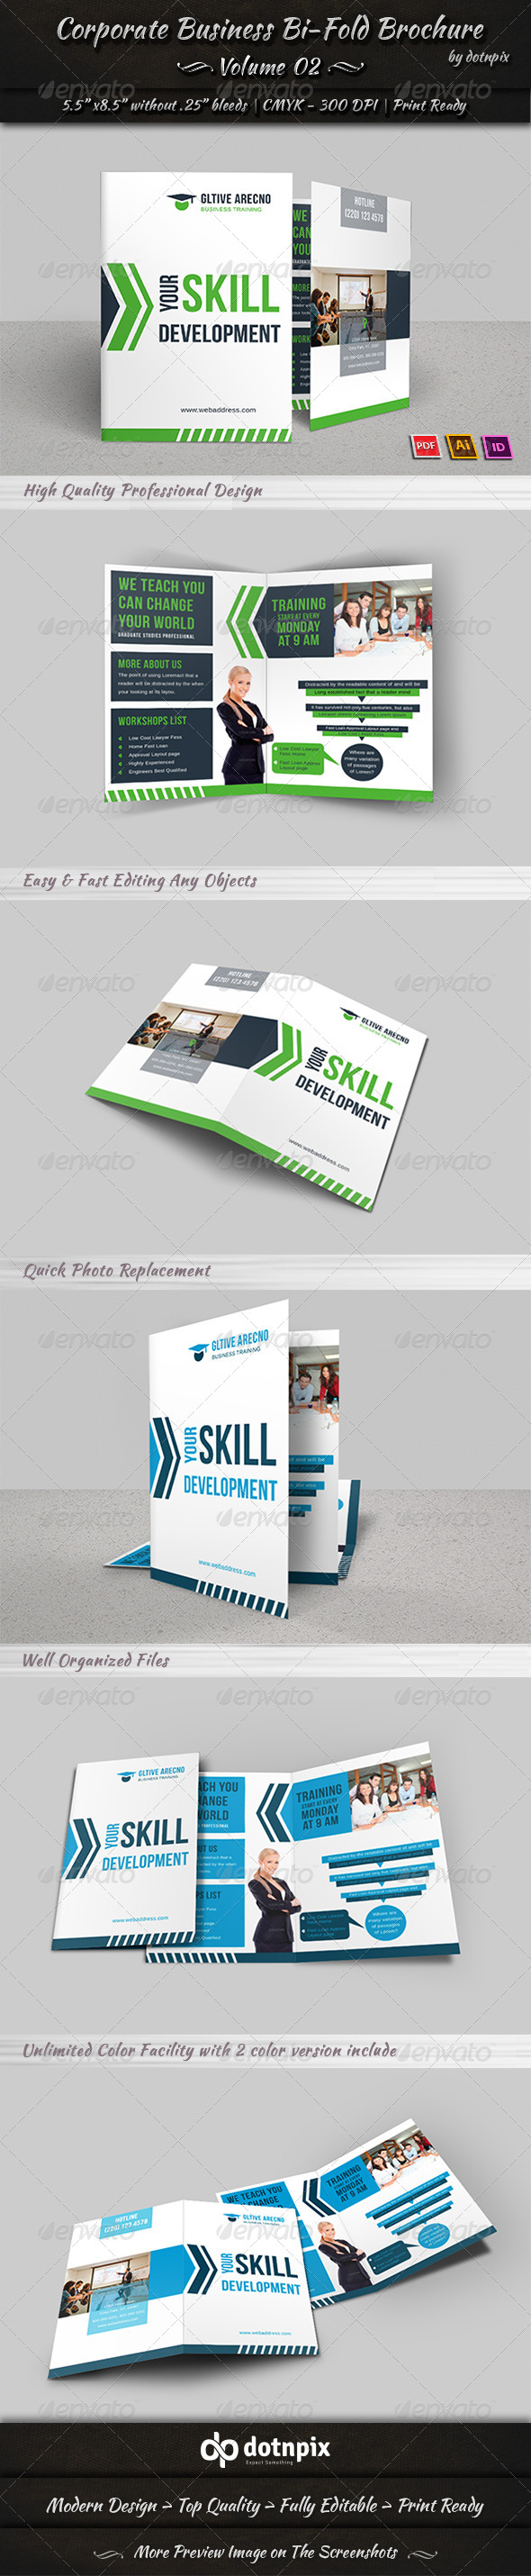 Corporate Business Bi-Fold Brochure | Volume 2 - Corporate Brochures